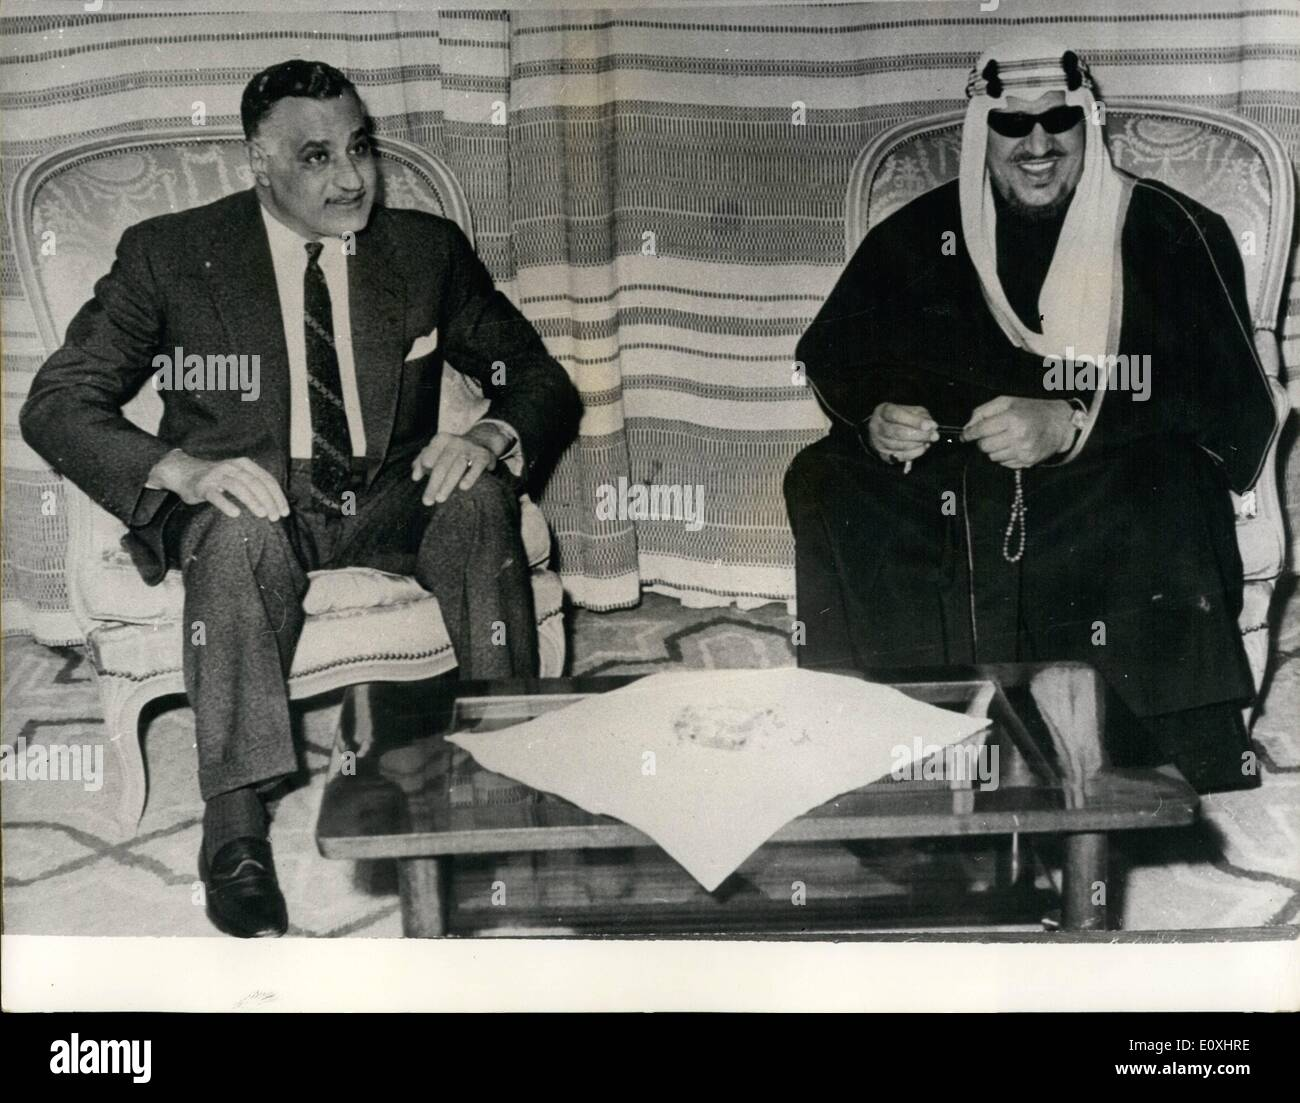 Jan. 01, 1967 - Nasser Visits Ex-King Saud: President Gamal Abdel Nasser, recently returned the visit of former - Stock Image